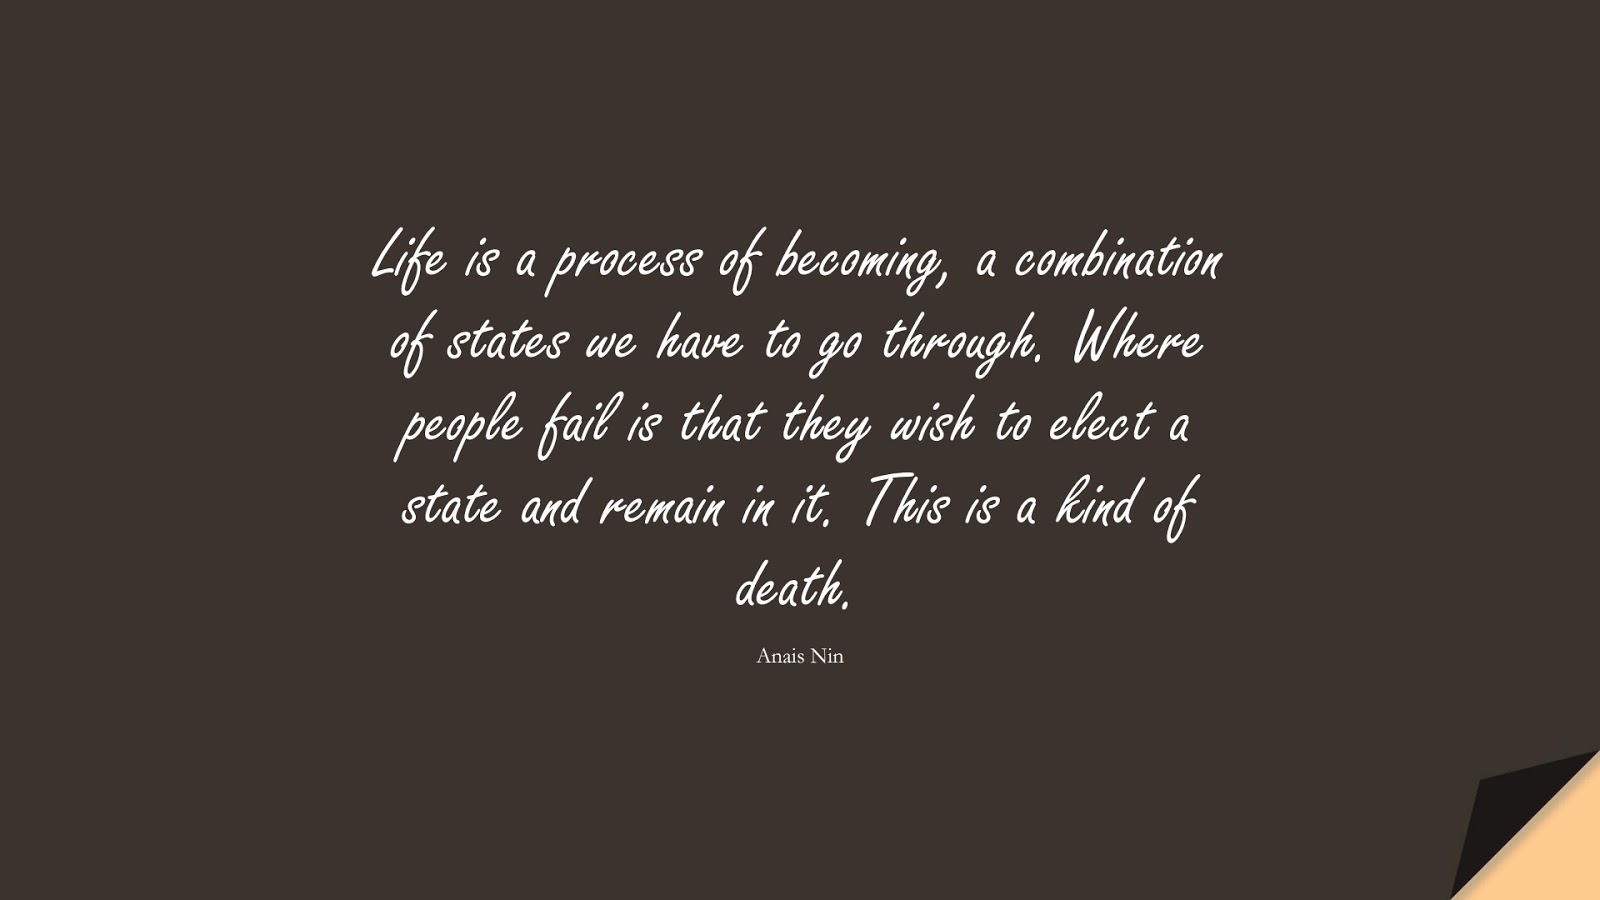 Life is a process of becoming, a combination of states we have to go through. Where people fail is that they wish to elect a state and remain in it. This is a kind of death. (Anais Nin);  #LifeQuotes